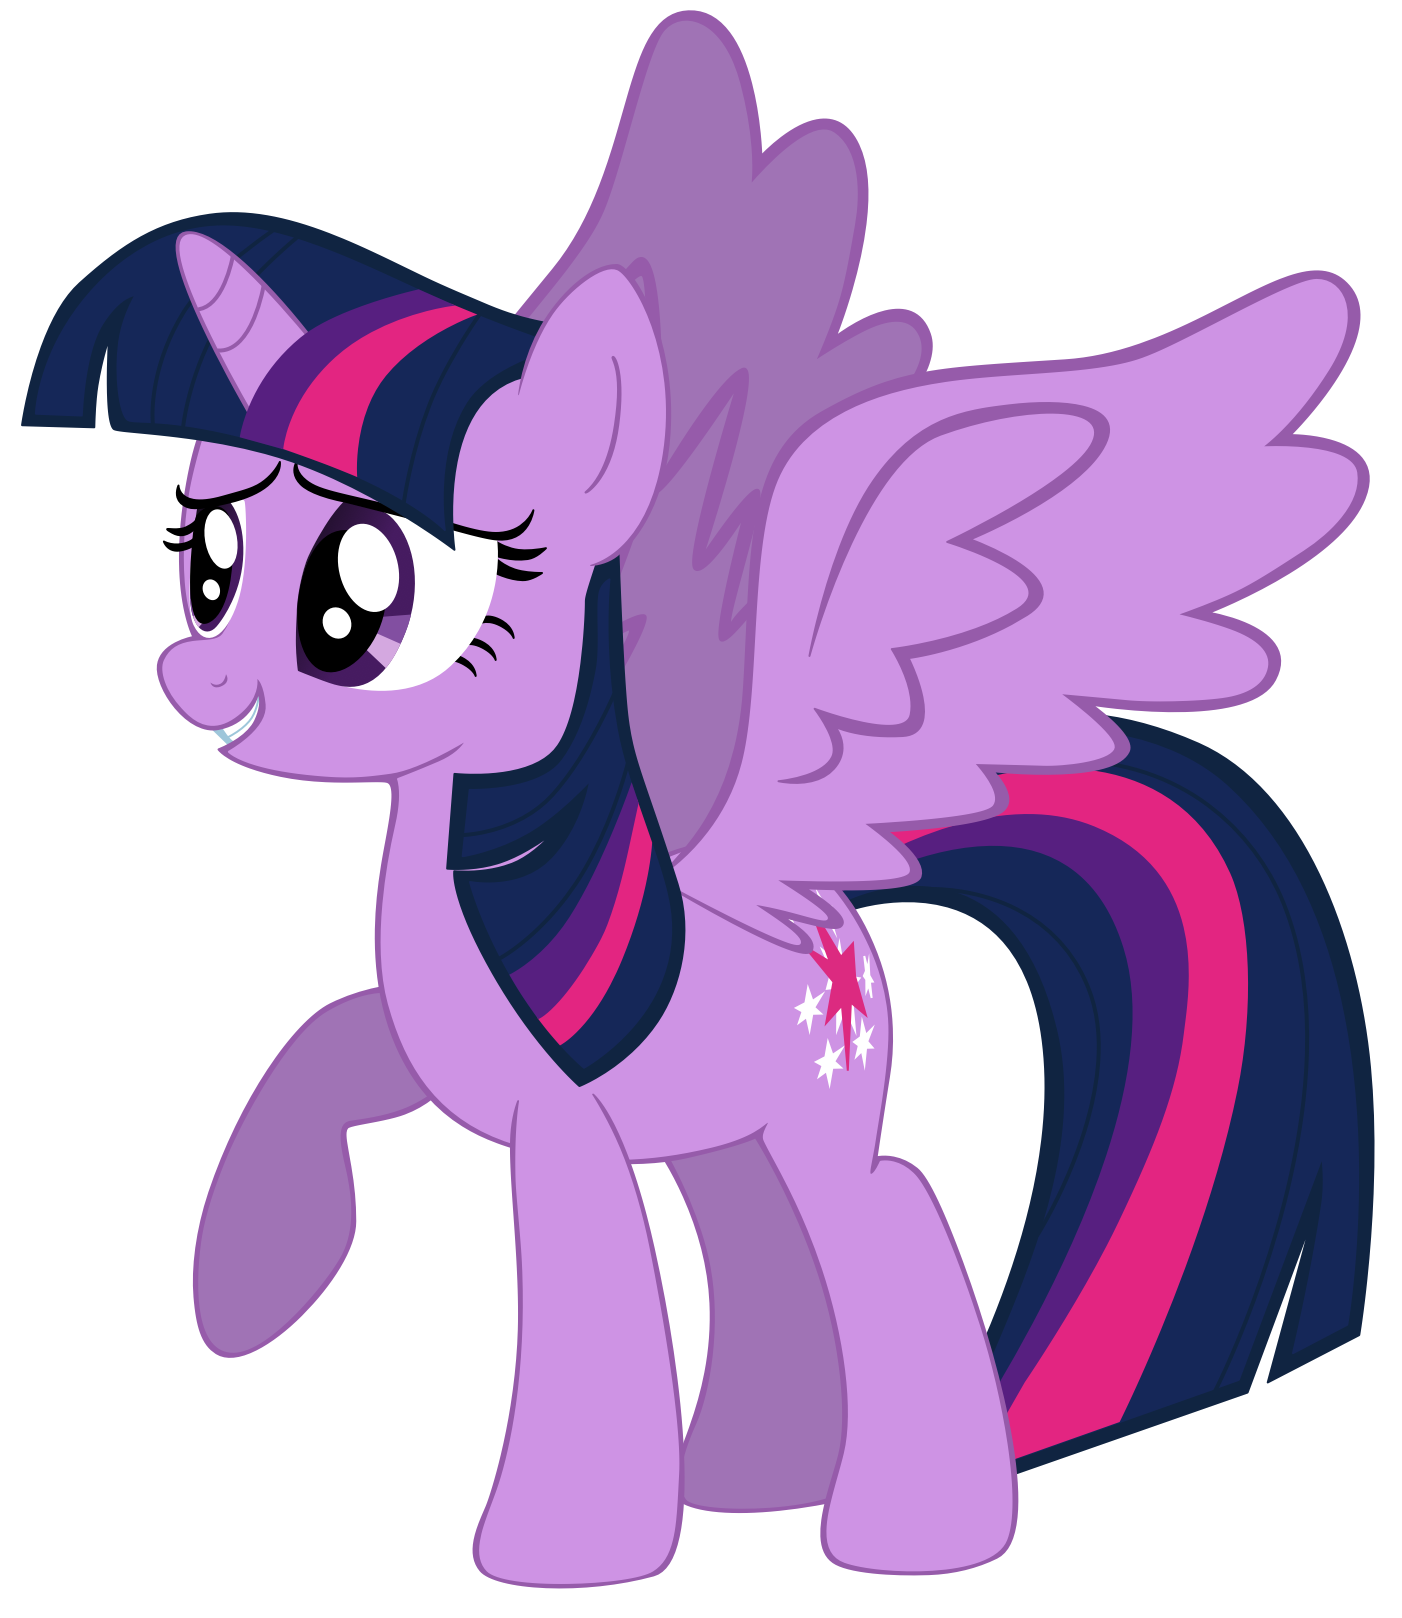 Sparkle clipart magical sparkle. Princess twilight drawing at